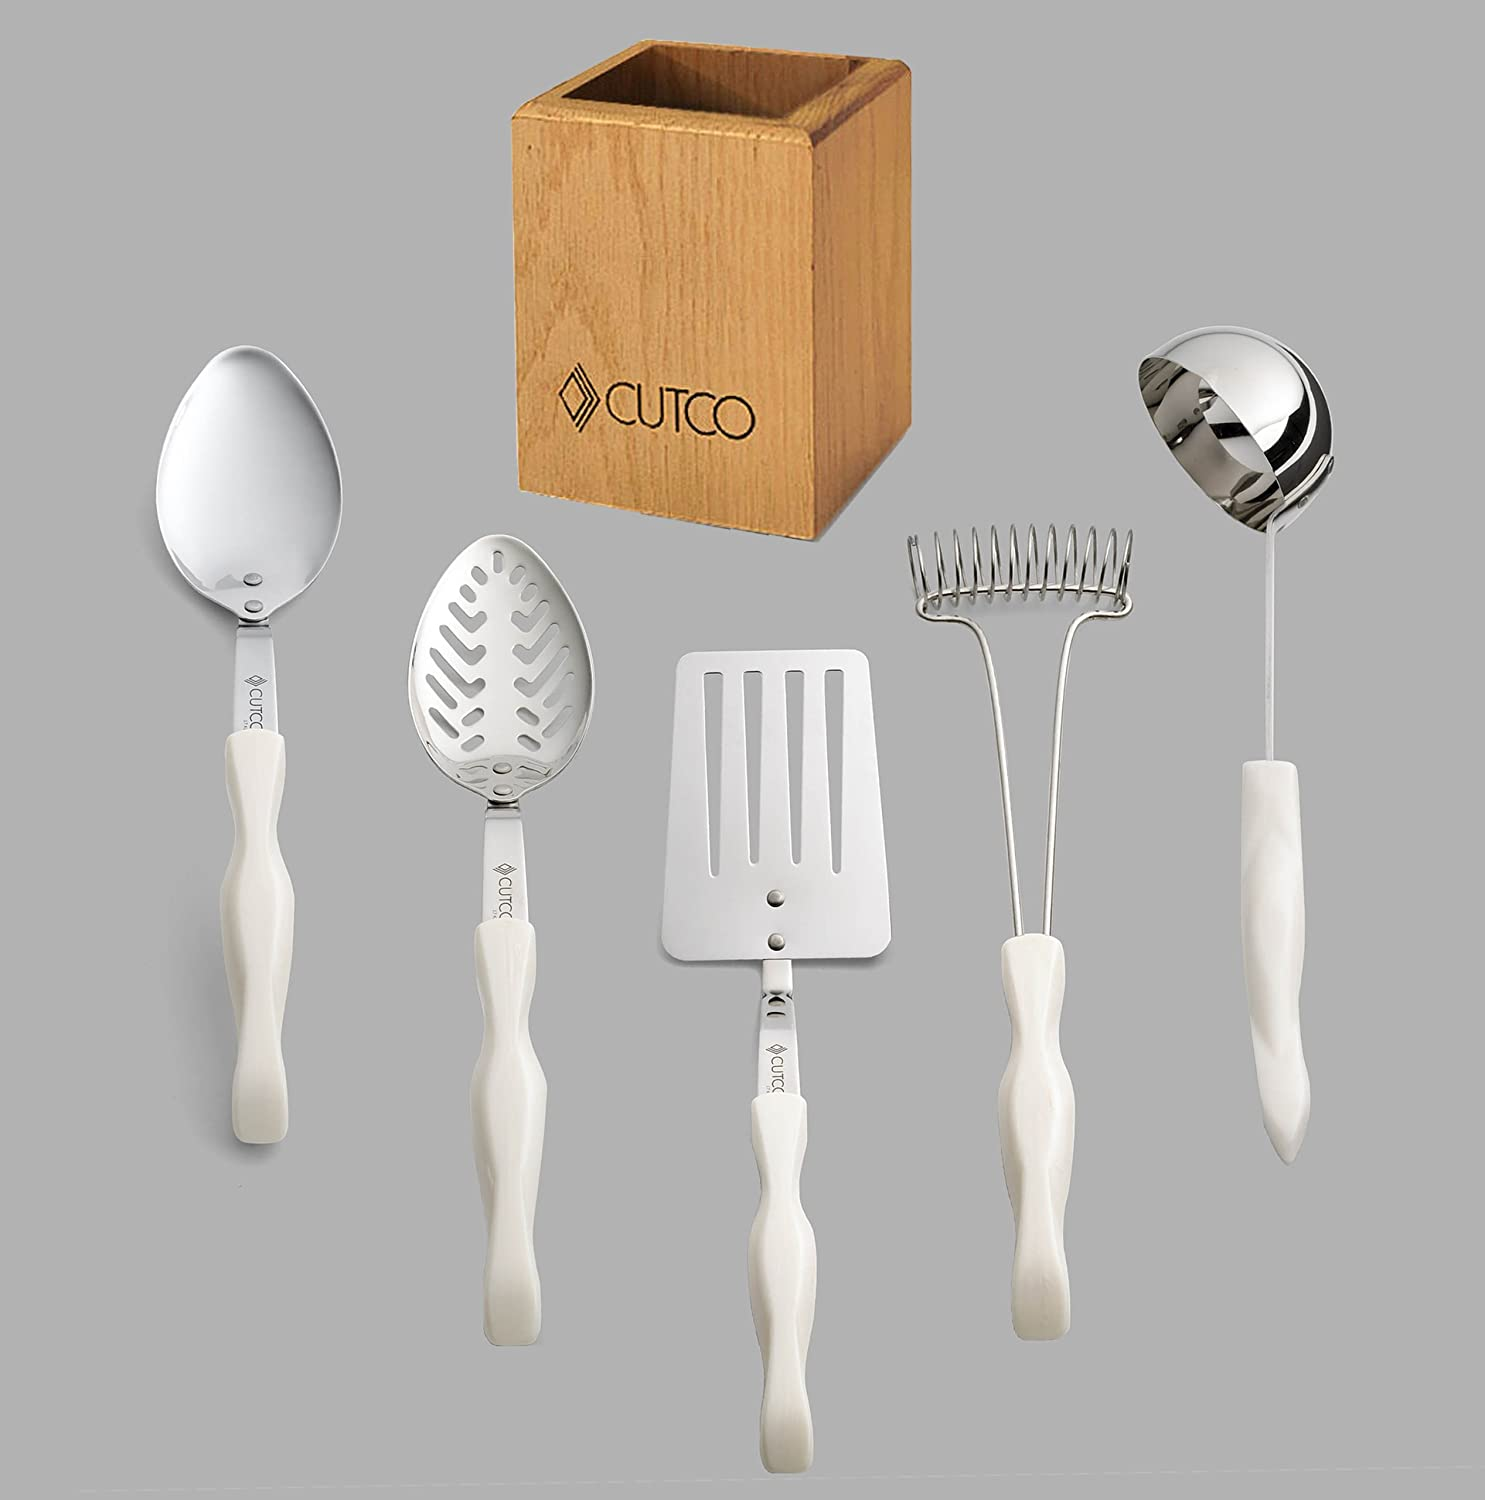 Cutco White Pearl Model 1718 5 Pc Kitchen Tool Set With Holder Includes 1716 Slotted Turner 1712 Basting Spoon 1713 Slotted Spoon 1715 Ladle 1714 Mix Stir And 1711 Oak Kitchen Tool Holder Amazon Com Grocery Gourmet Food